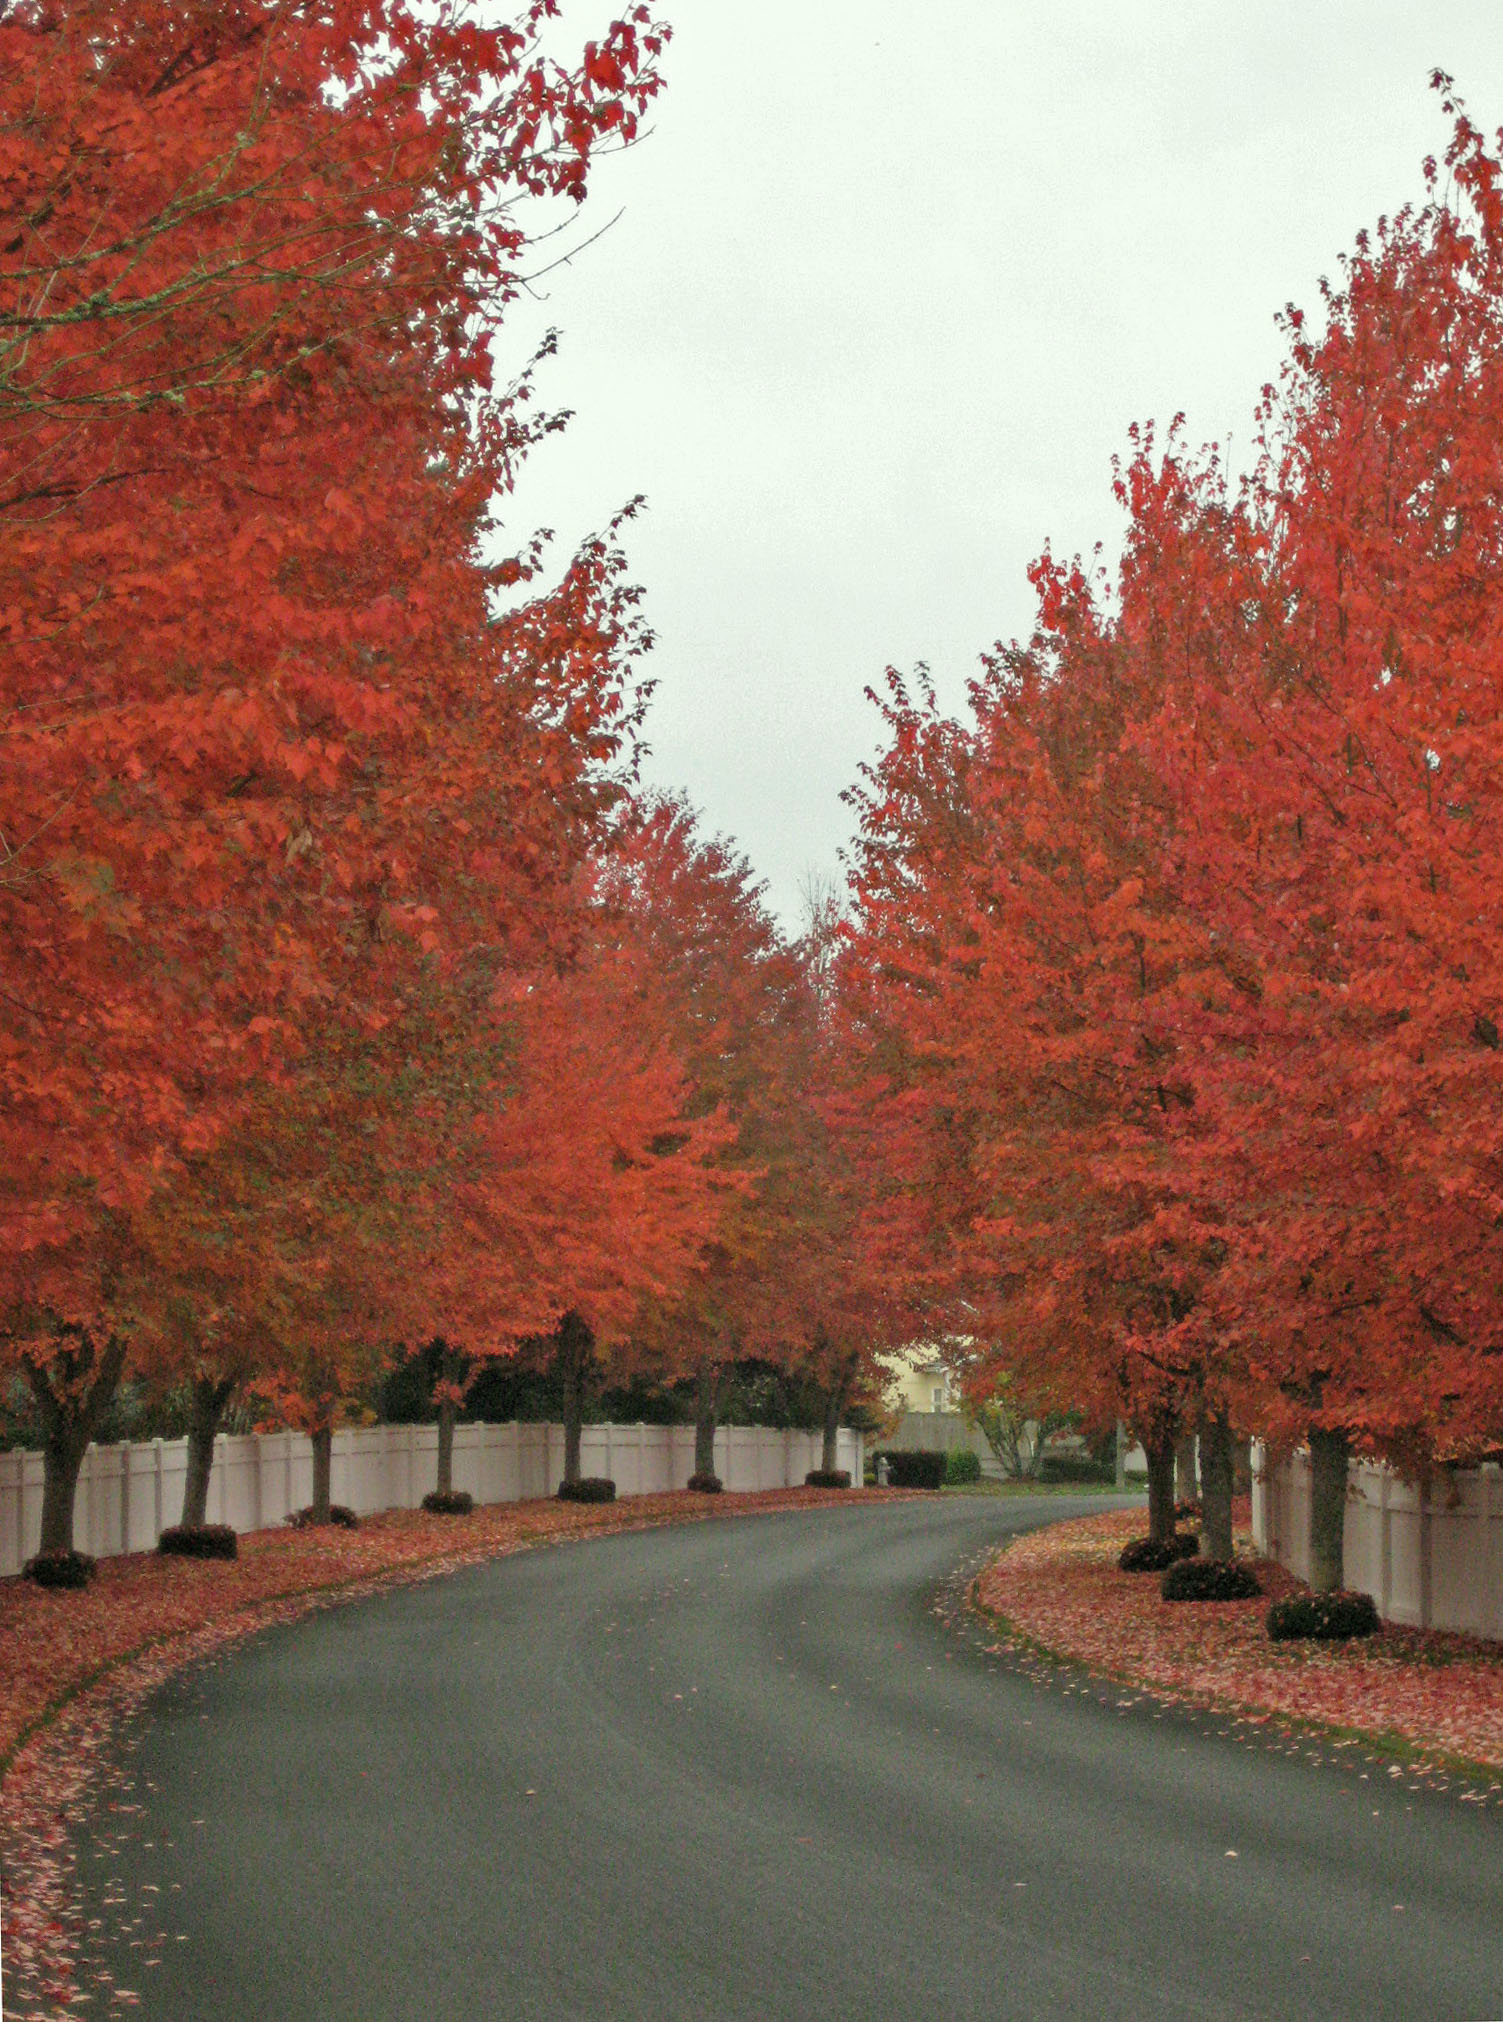 Fall Foliage in the Northwest